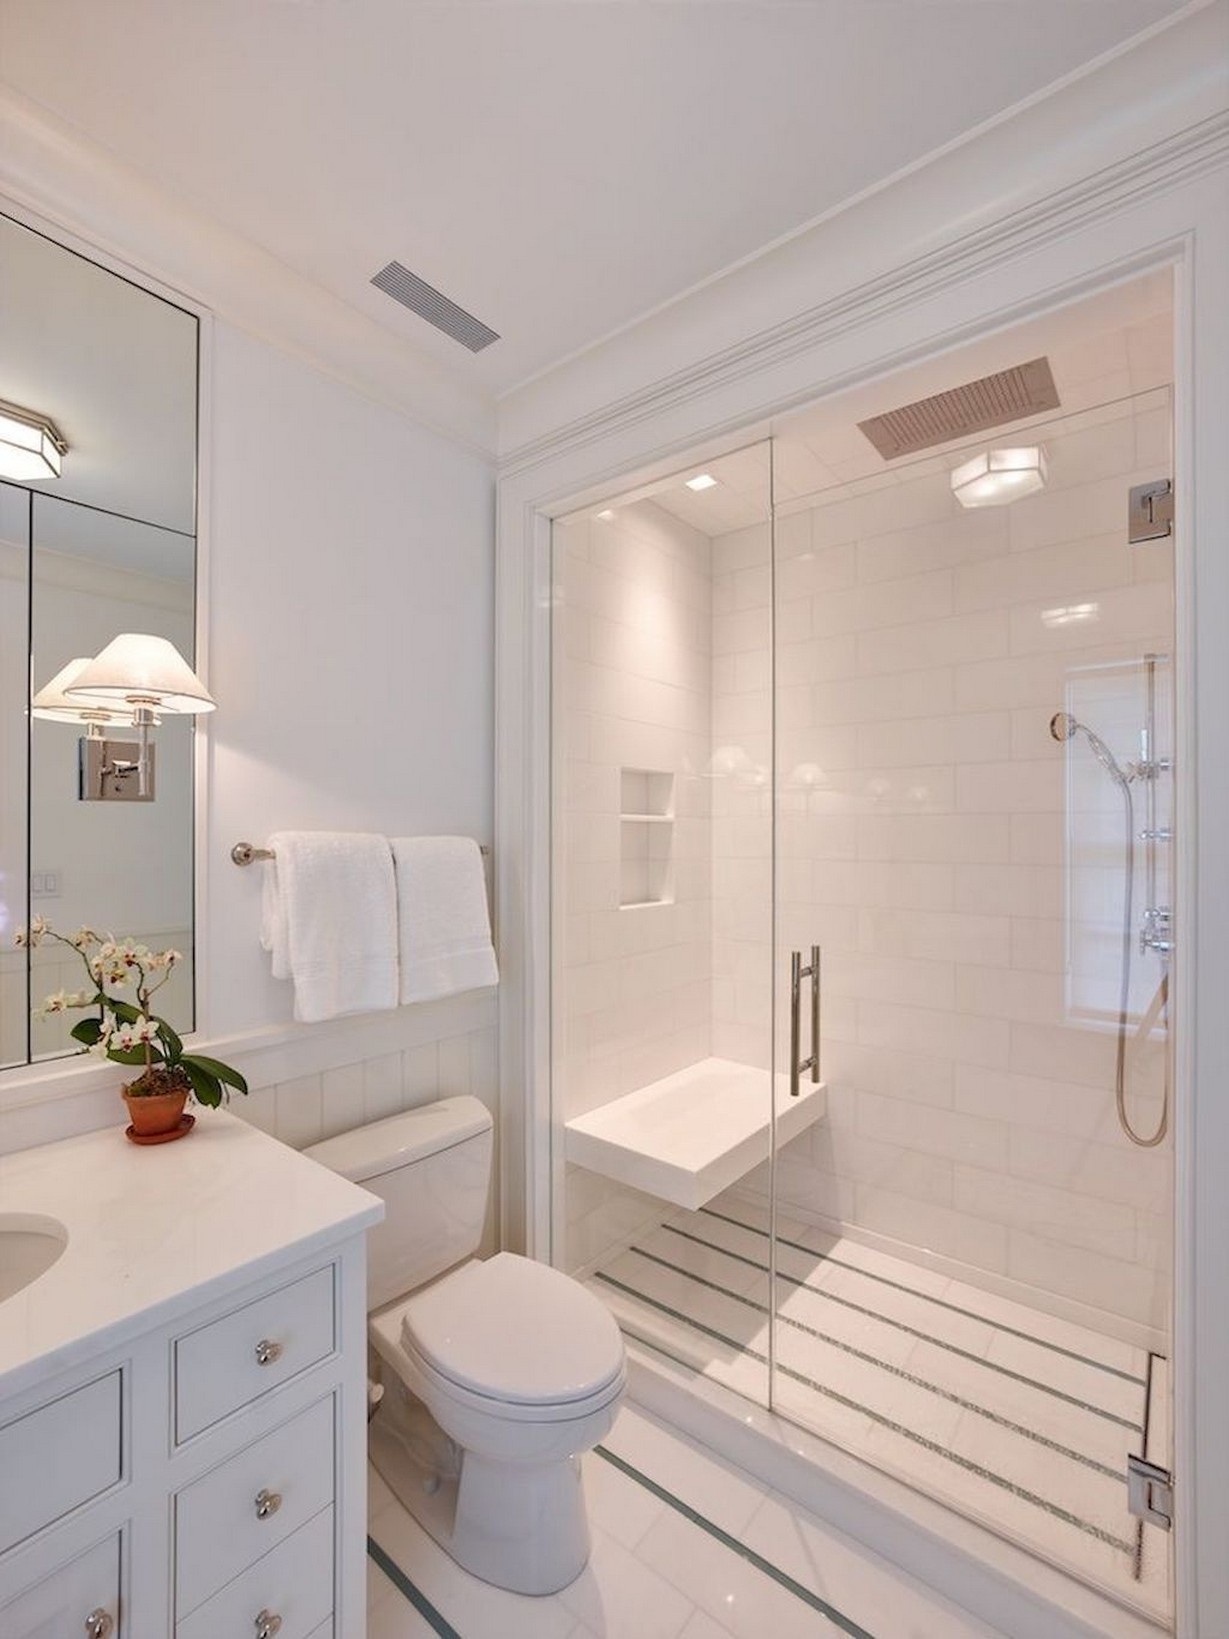 70 Master Bathroom Remodeling For Man and Woman Home Decor 9